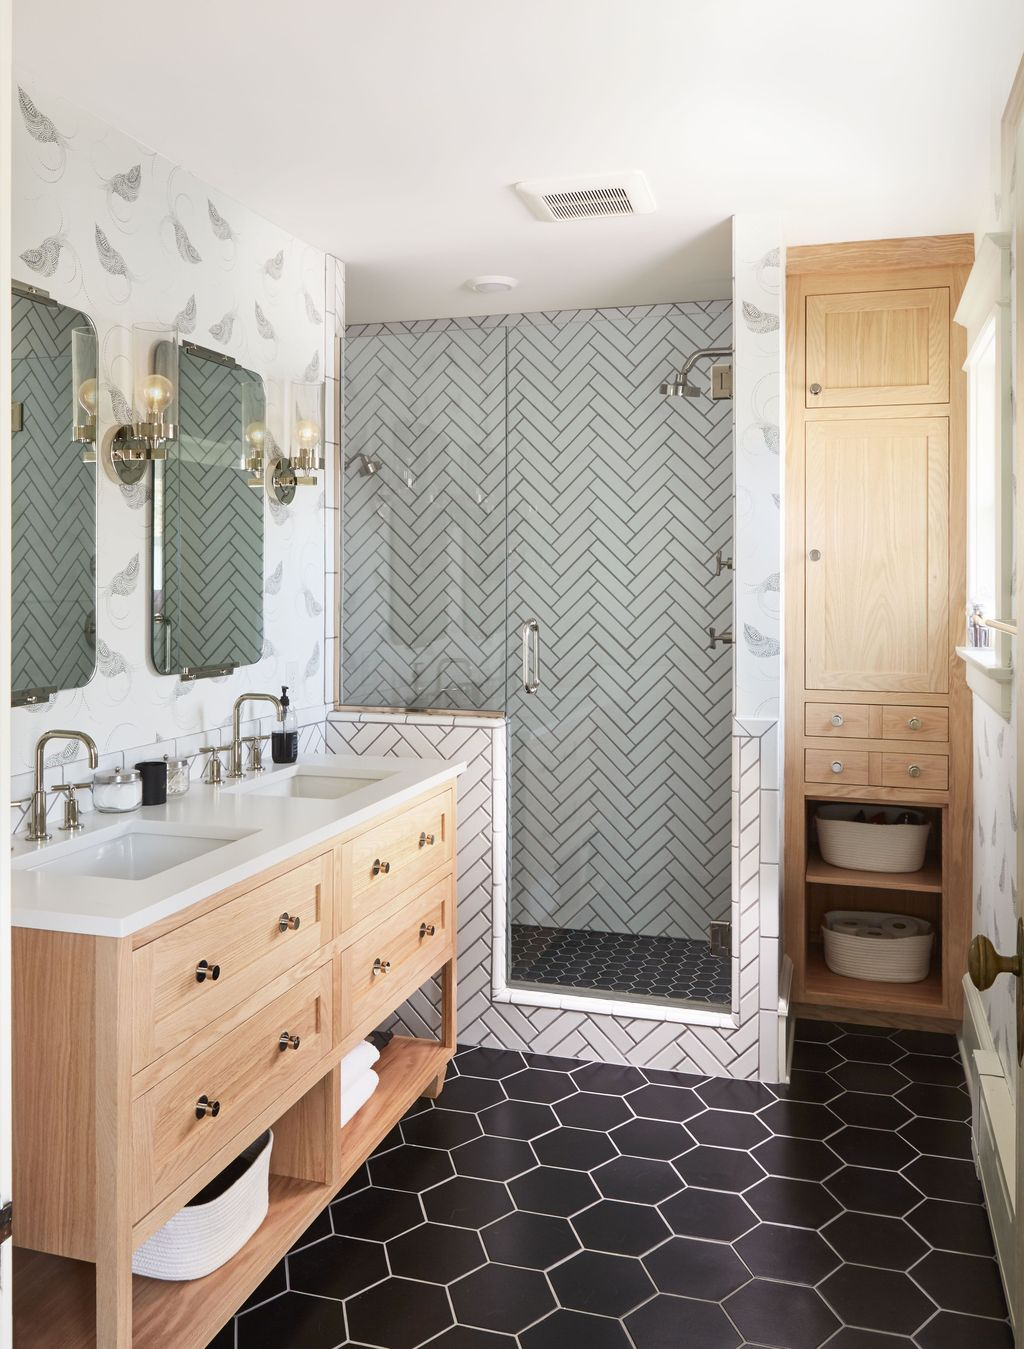 Amazing White Tile Bathroom Design Ideas Looks Elegant 24